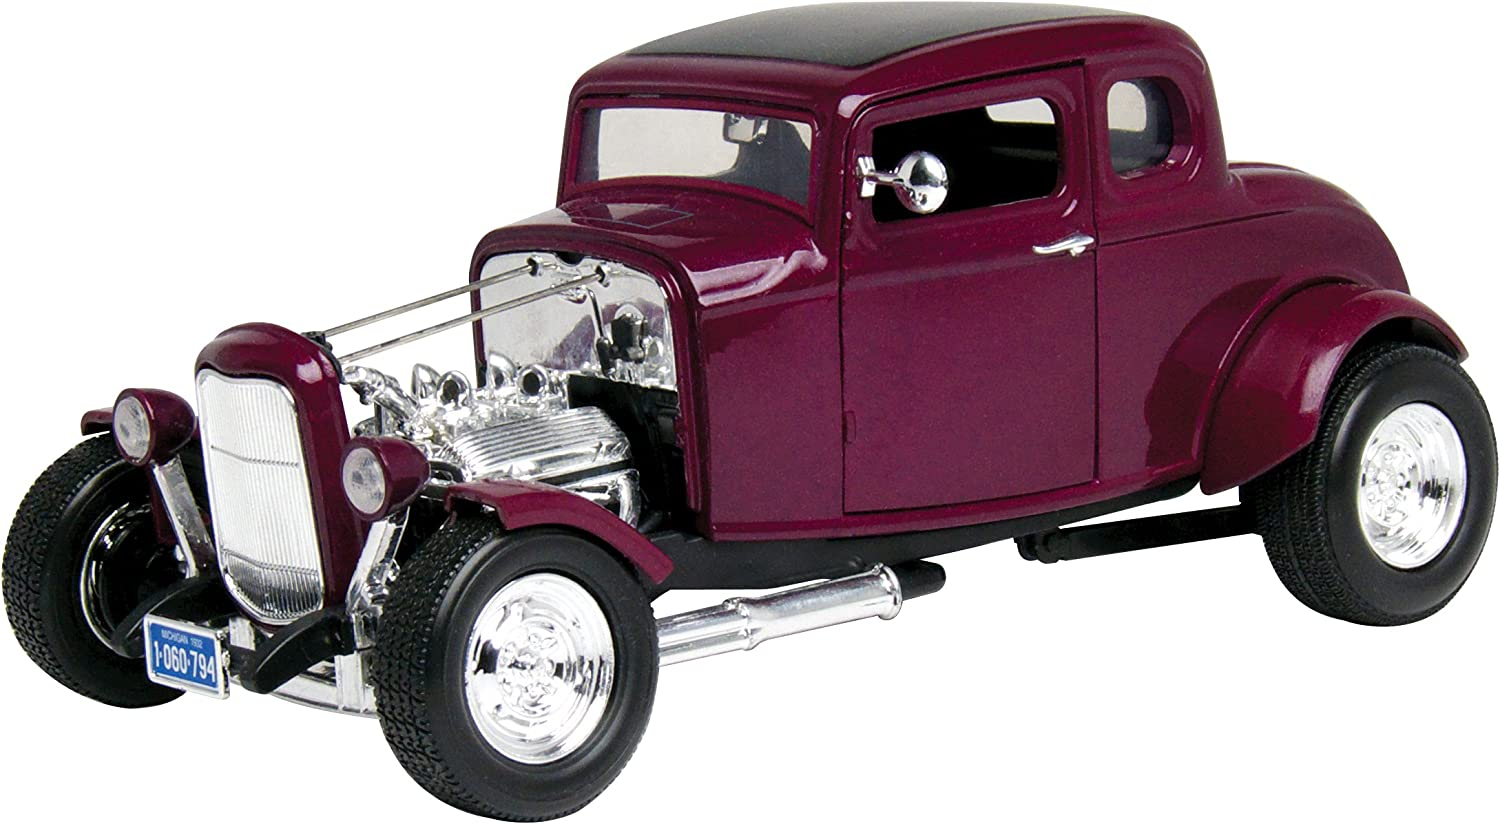 Motormax 1:18 Die-Cast 1932 Ford Graffiti Special price for a limited time Great interest Hot Rod-American